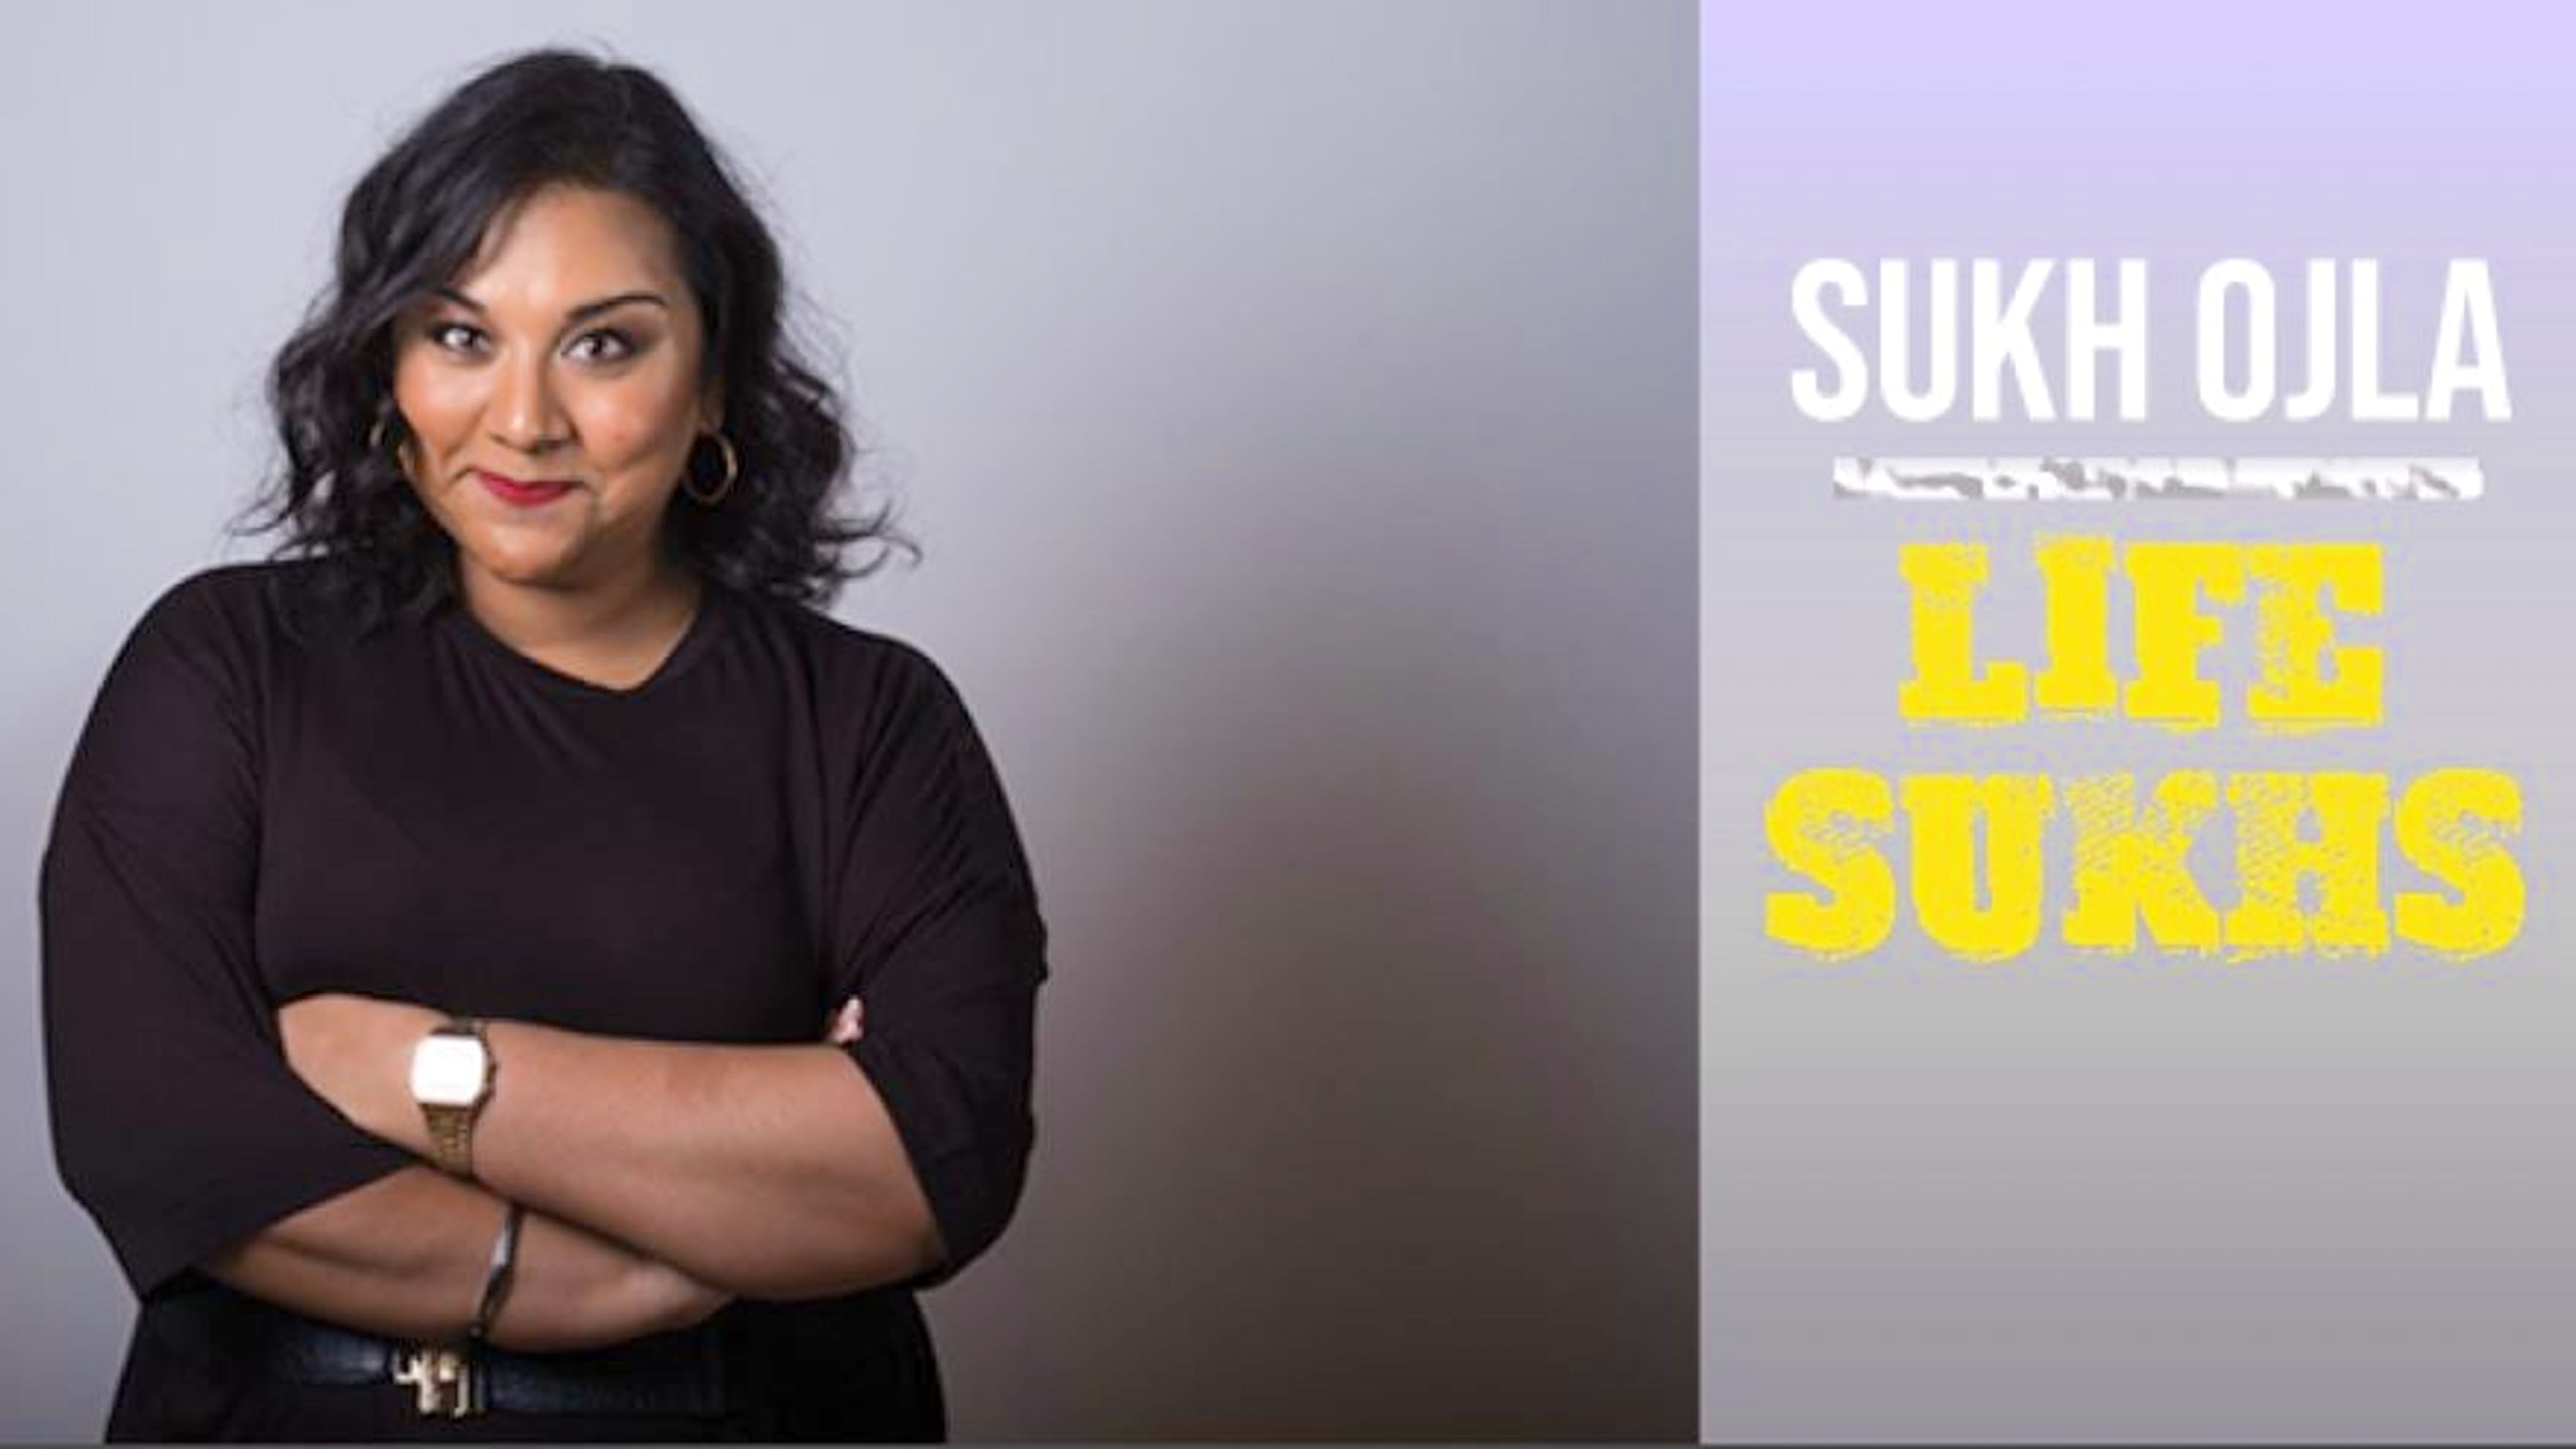 Sukh Ojla : Life Sukhs – Leicester